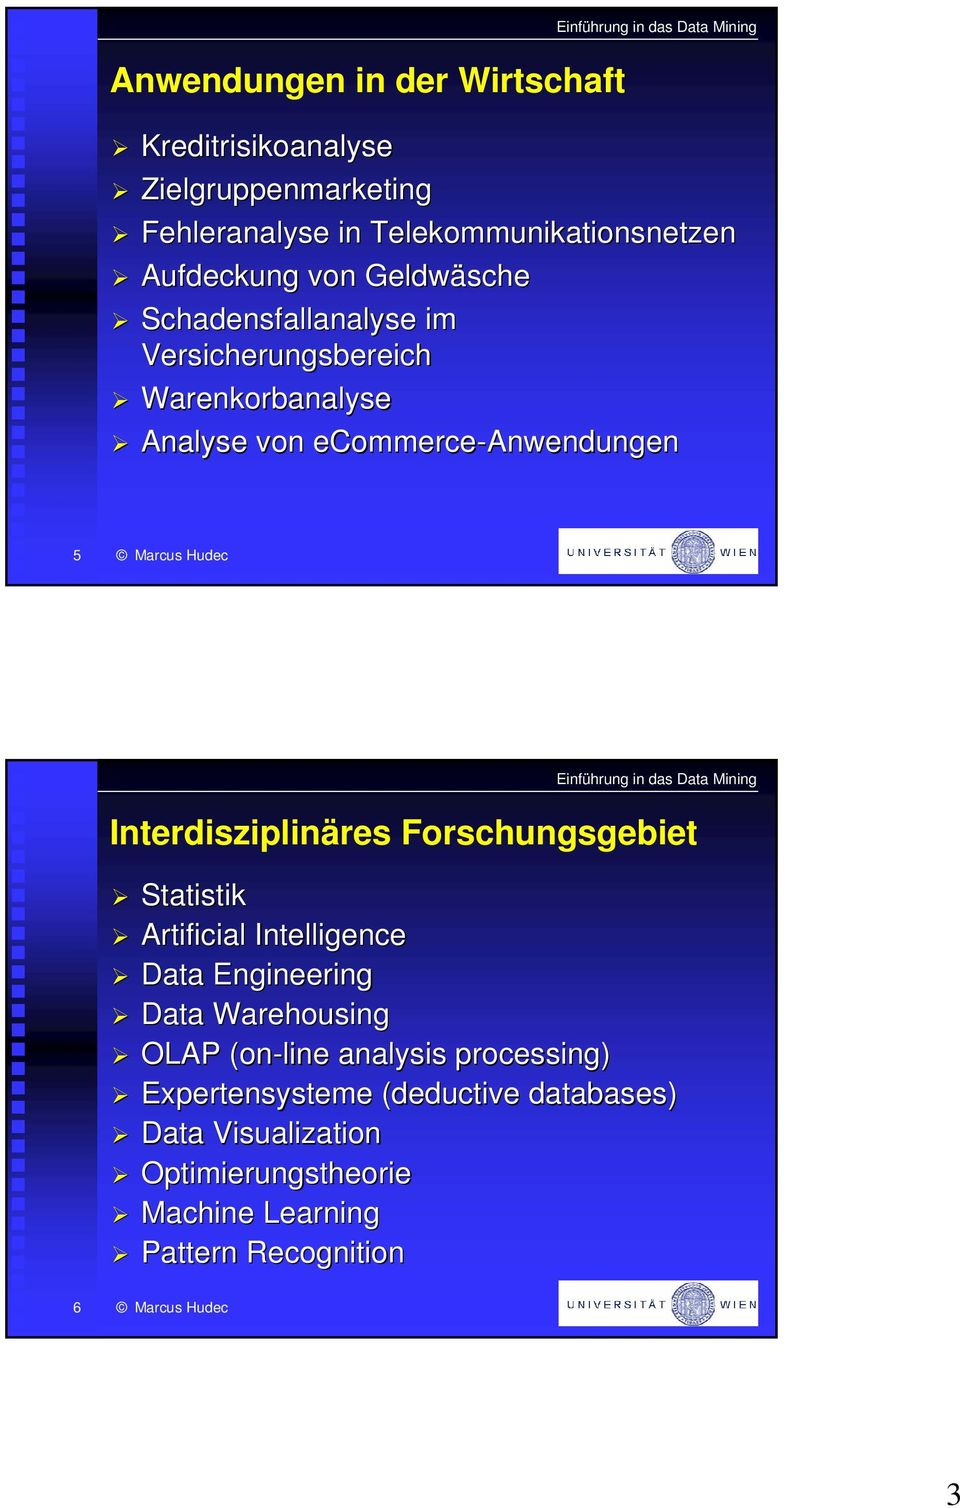 Interdisziplinäres Forschungsgebiet Statistik Artificial Intelligence Data Engineering Data Warehousing OLAP (on-line